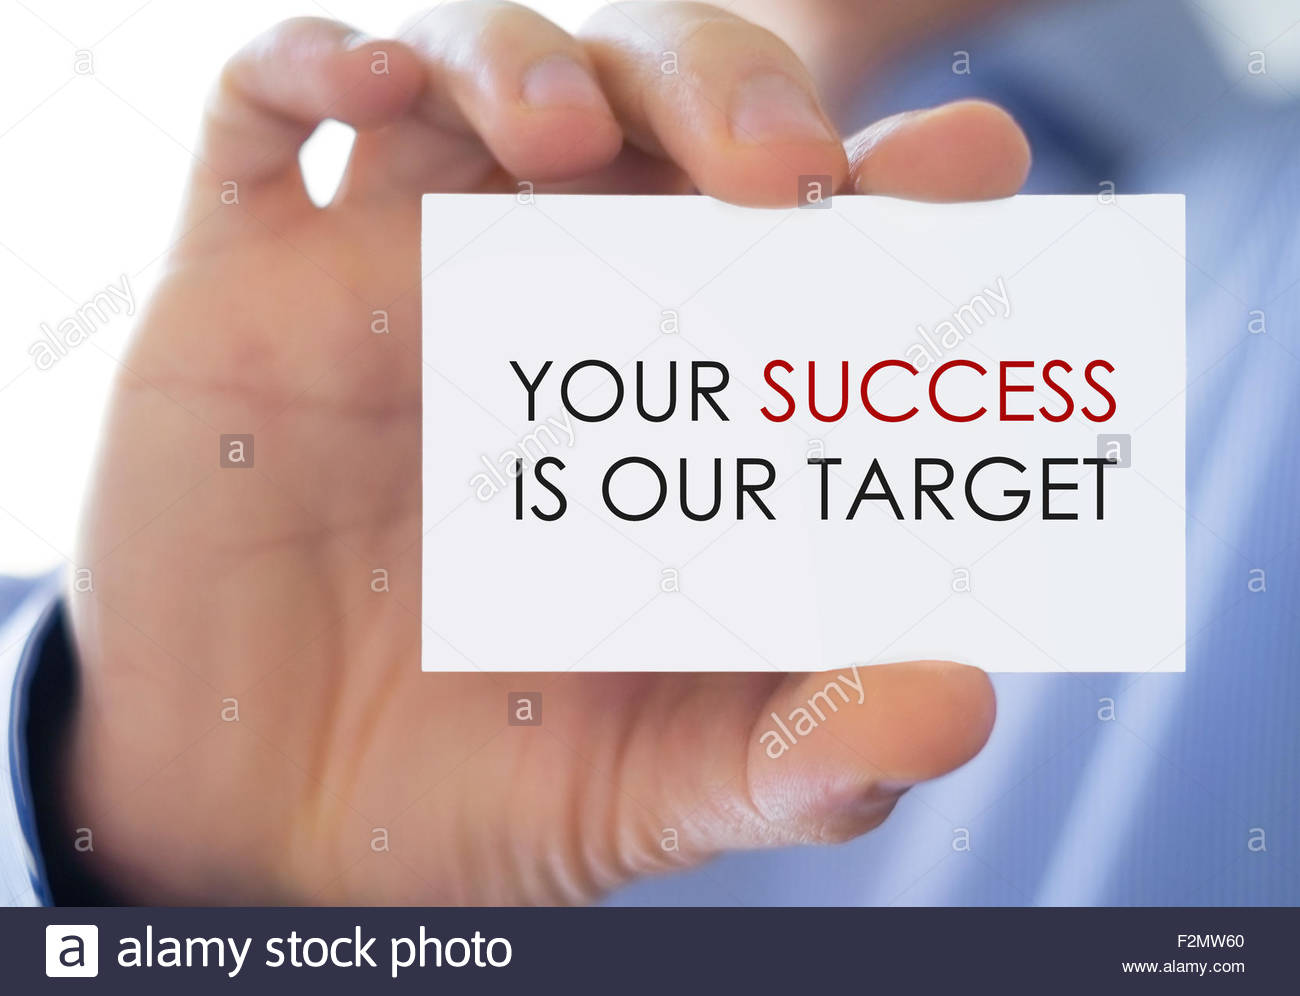 Your Success is our Target - Stock Image